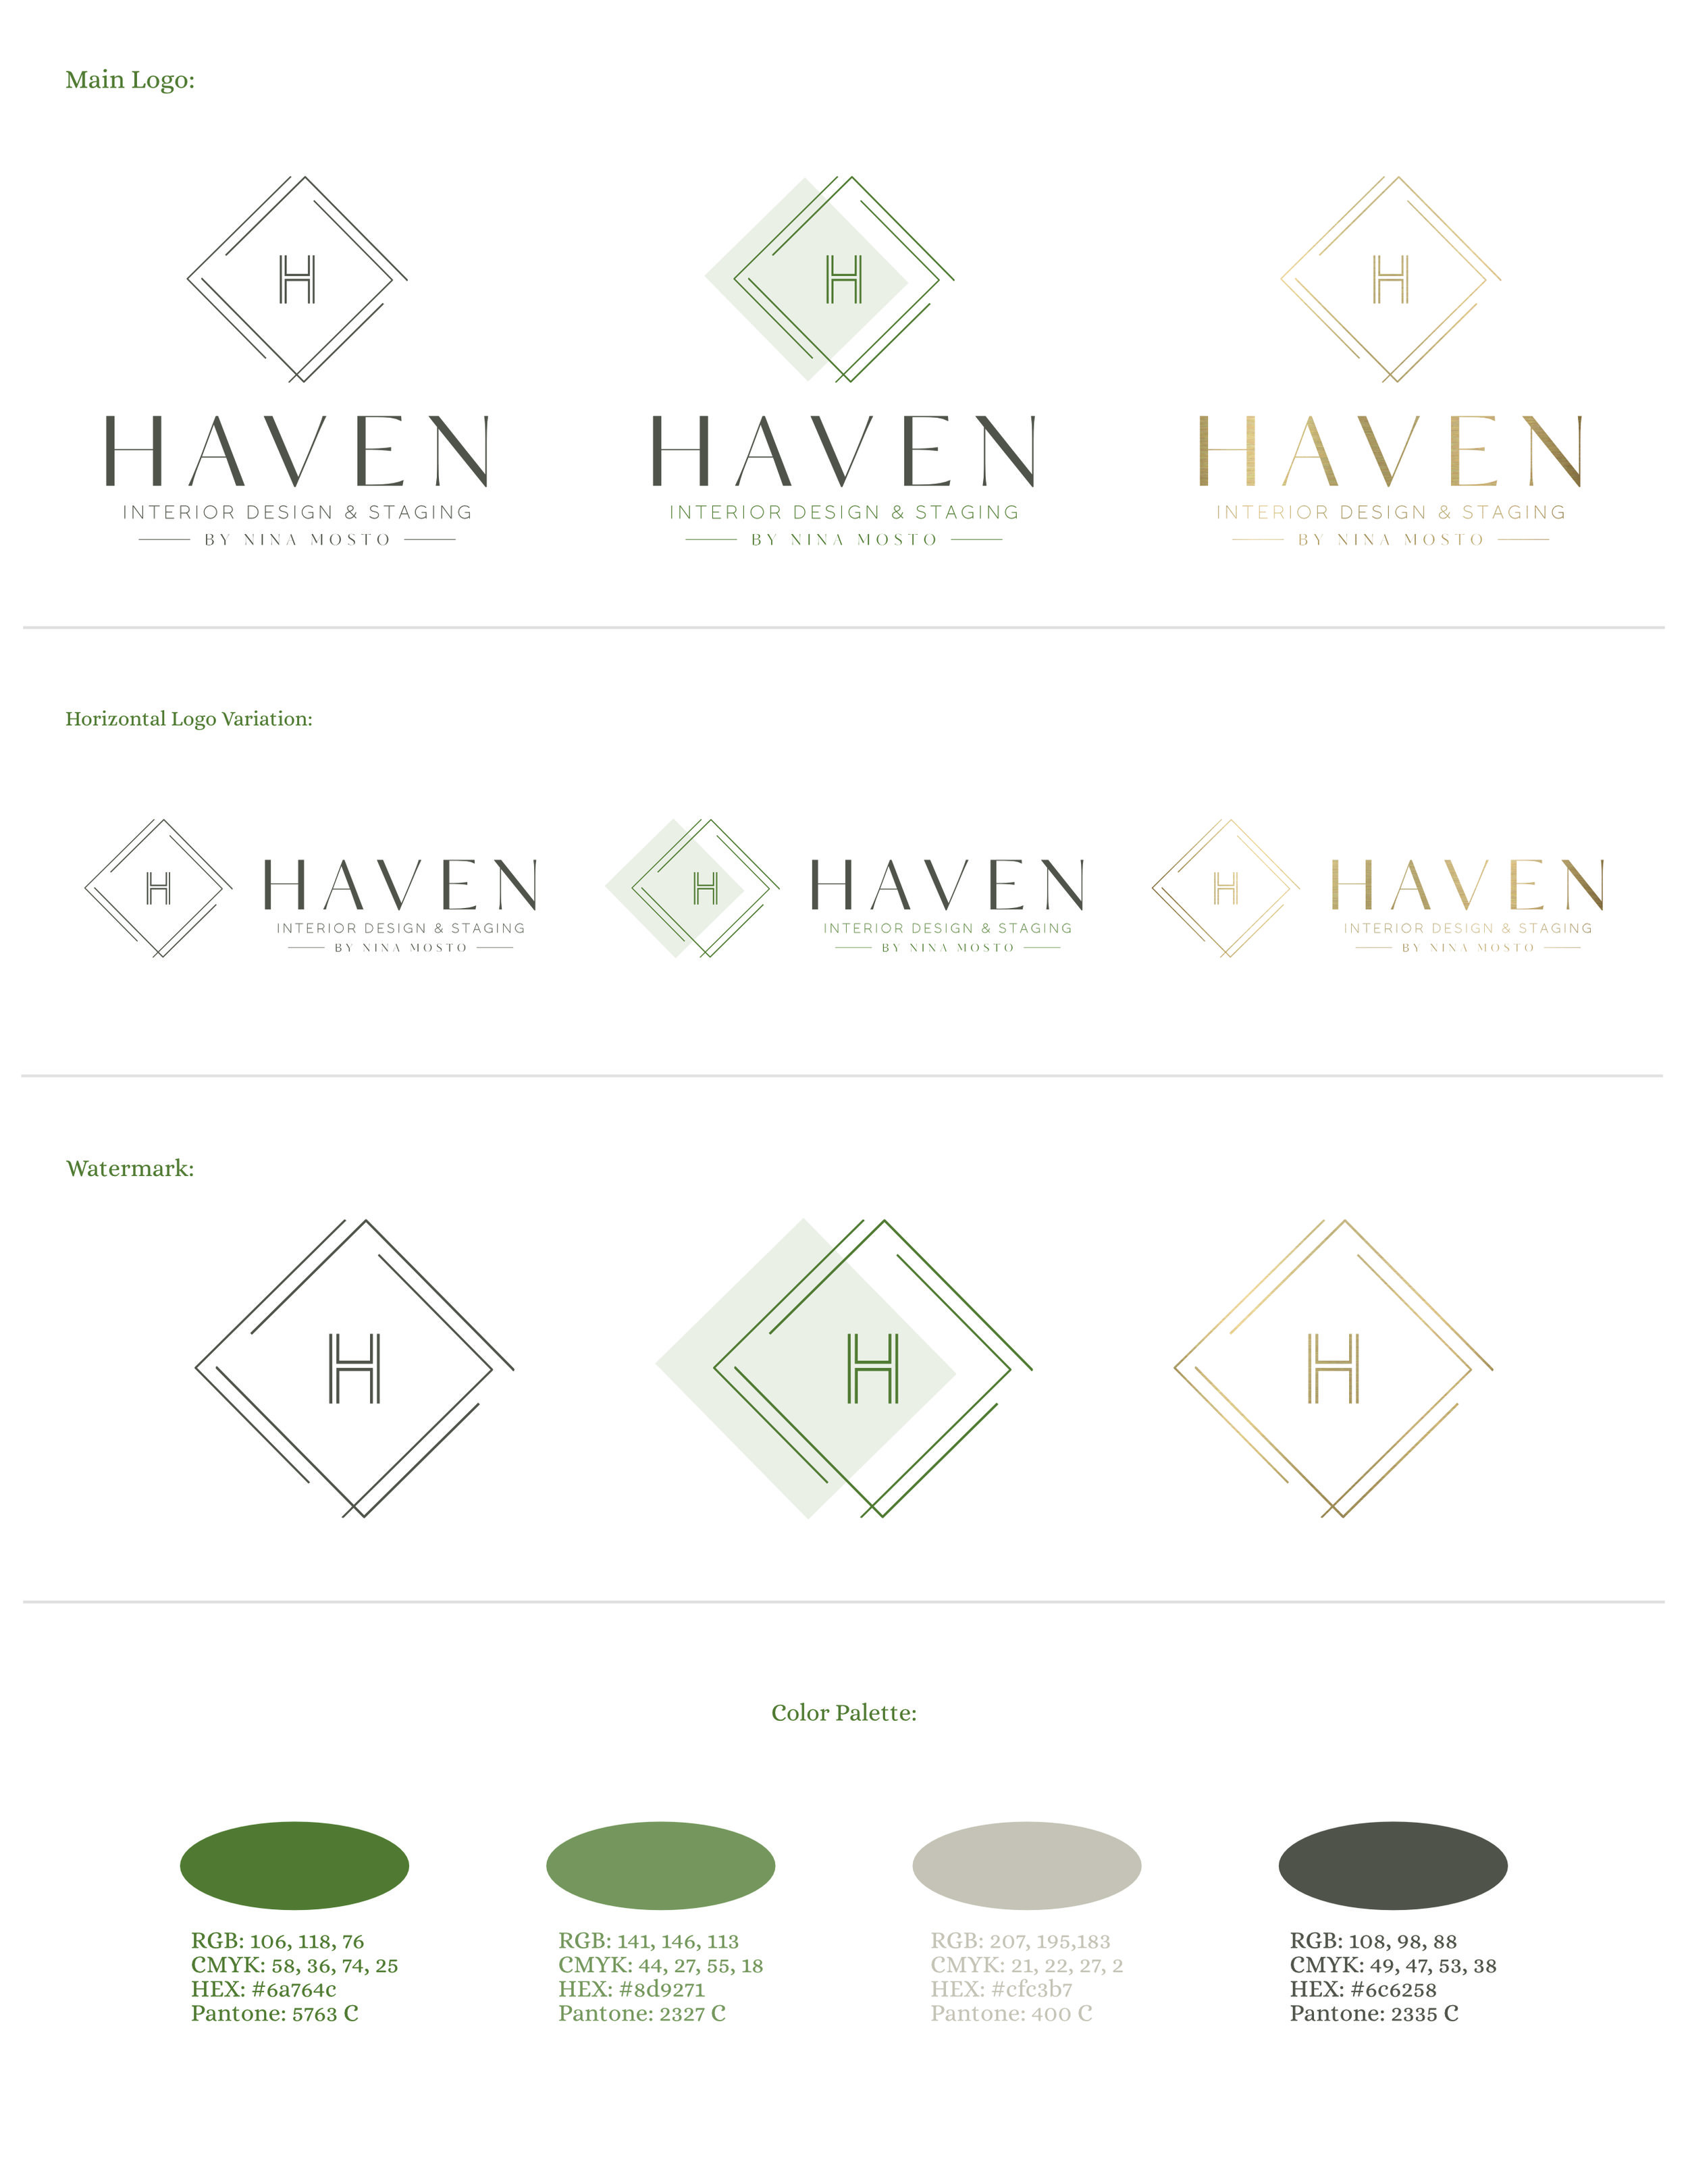 The elegant style guide brand for Haven Interior Designs & Staging by Nina Mosto - Brand designed by Tarragon Studios. Keep Reading to learn more about this project! #logo #design #chic #minimal